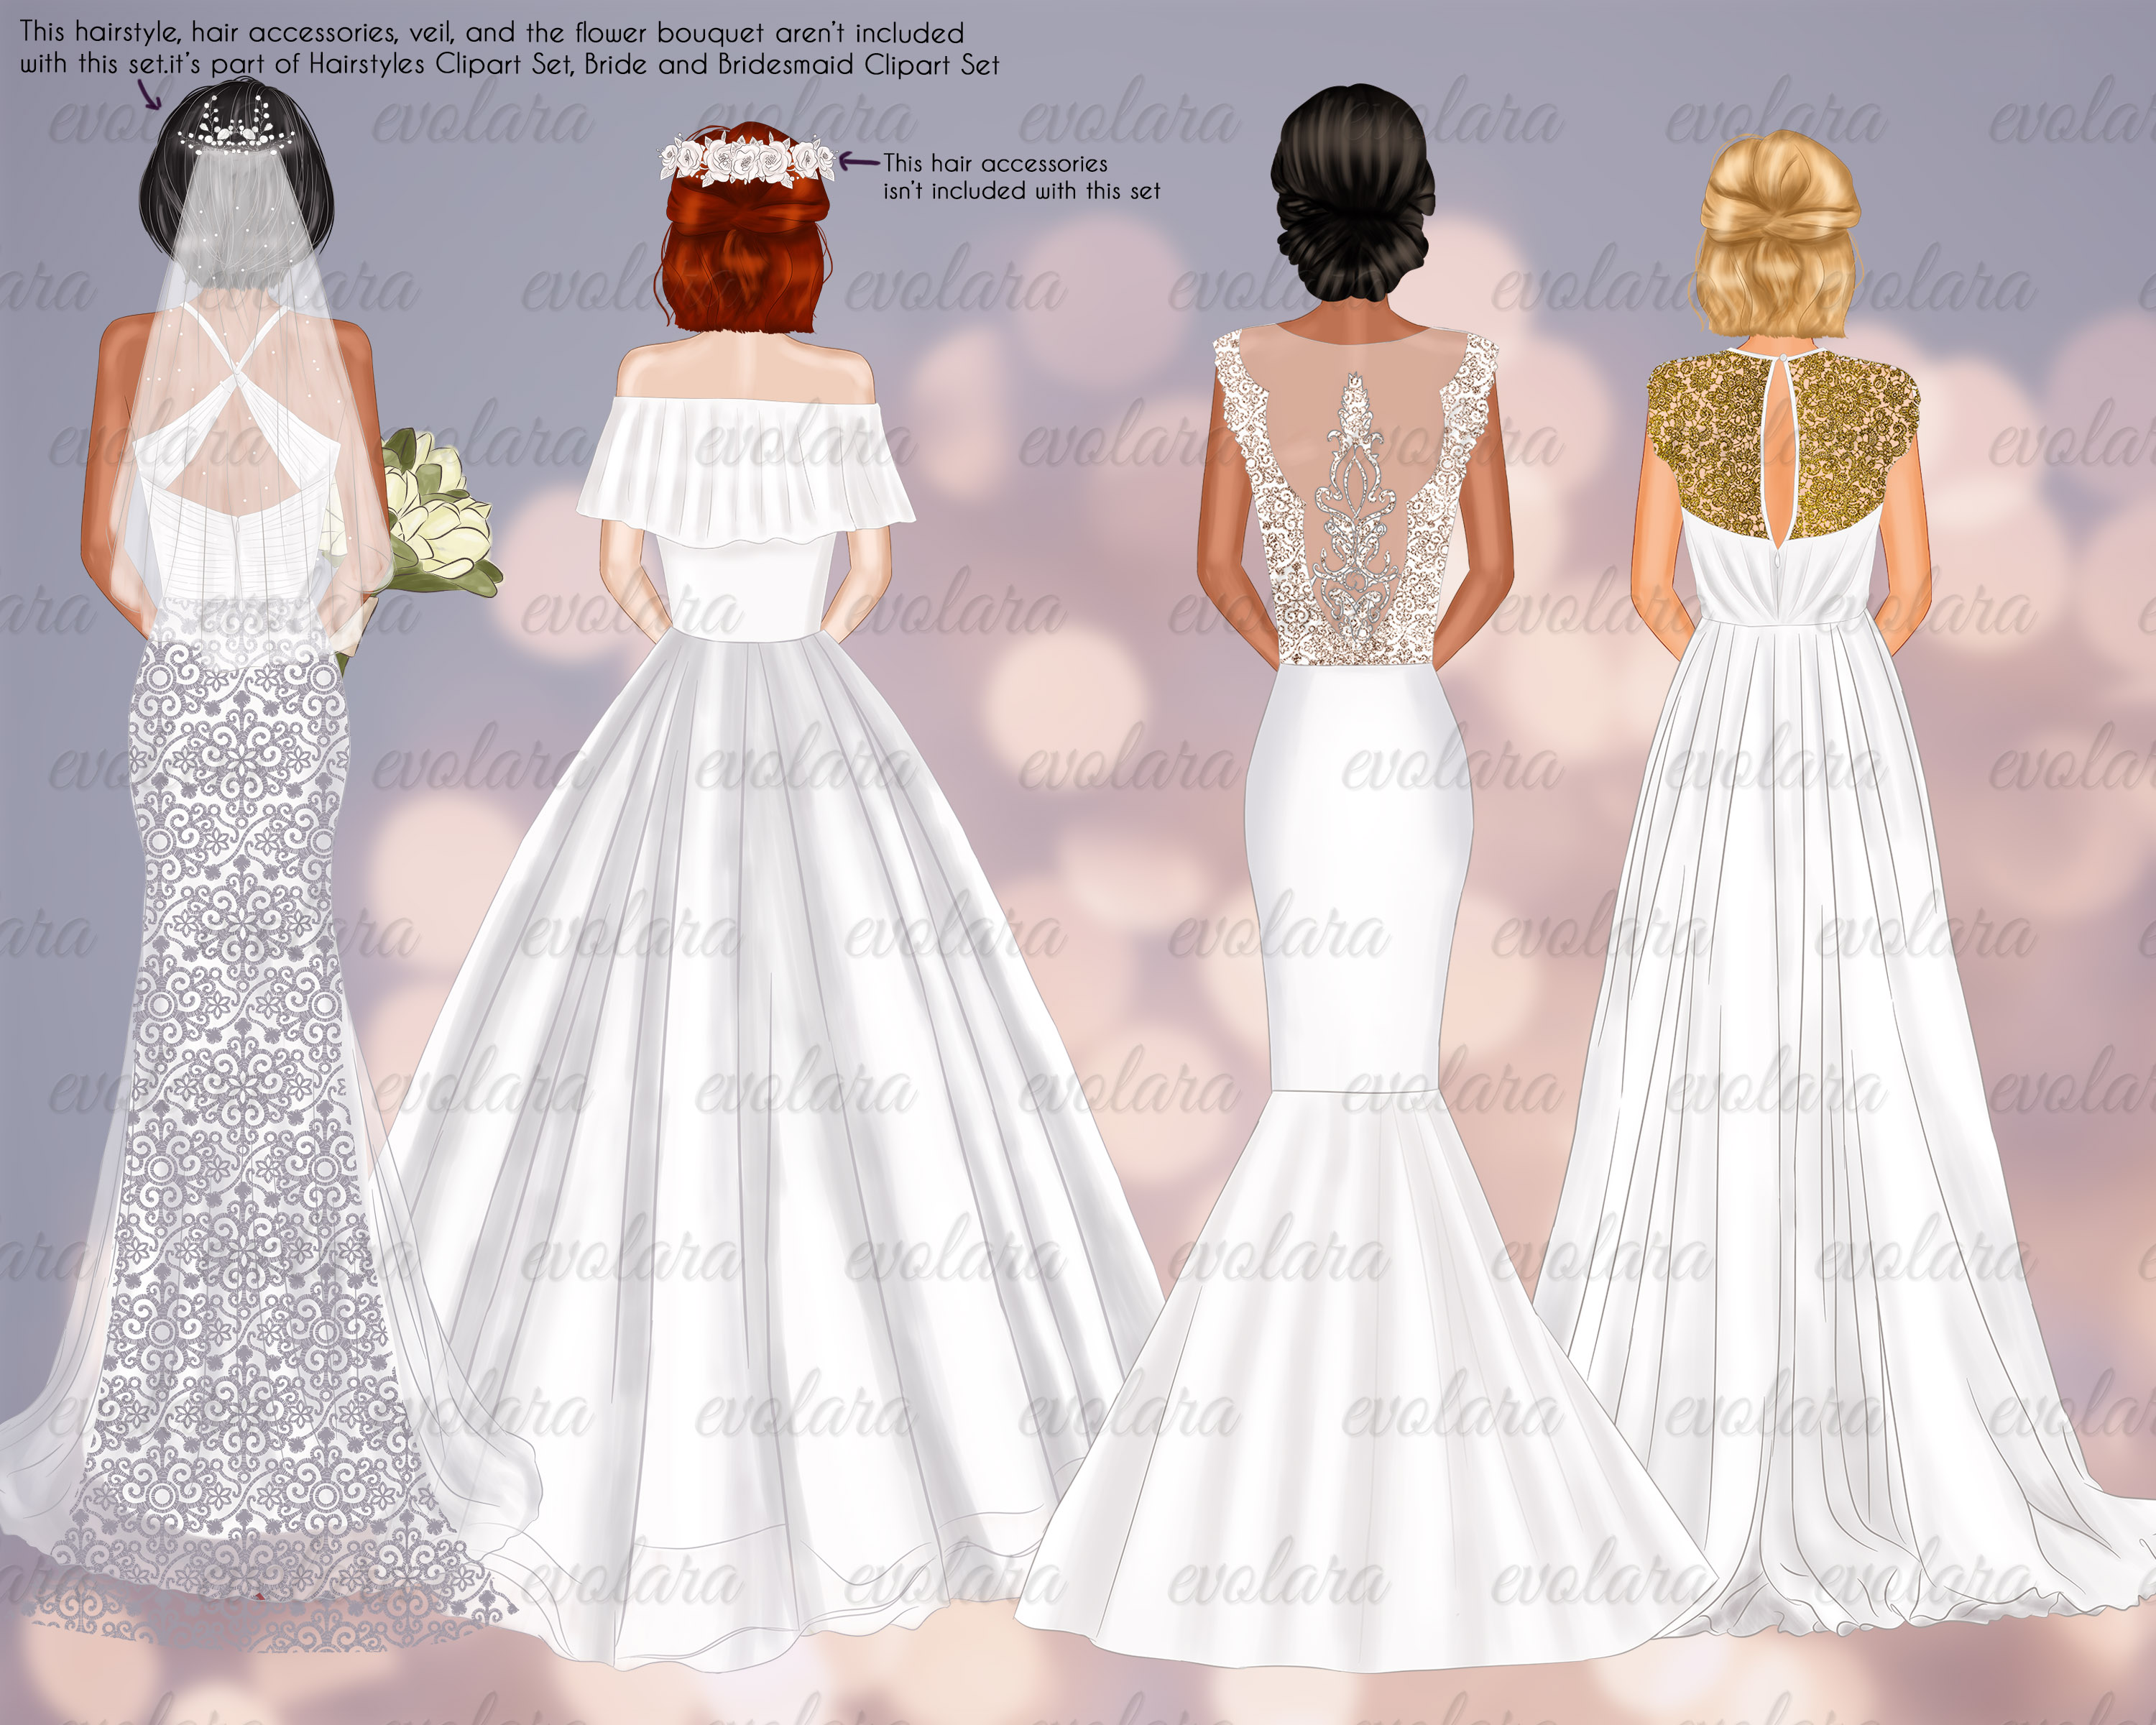 Bride Clipart Bridesmaid Clipart Best Friends Wedding example image 8